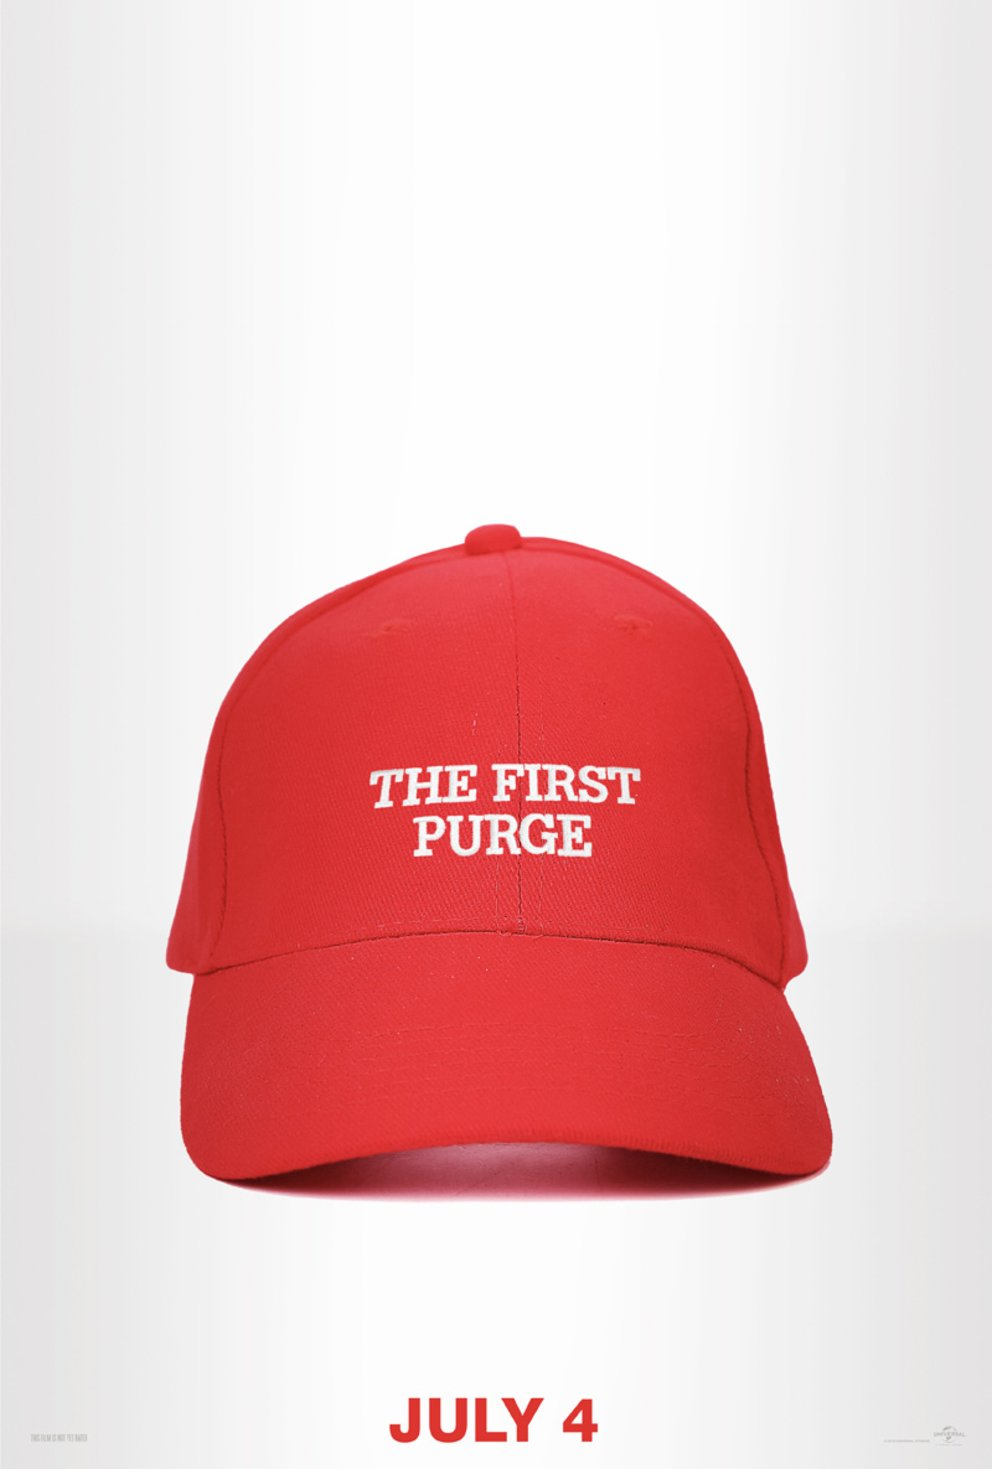 The Purge 4: The First Purge © Blumhouse Productions